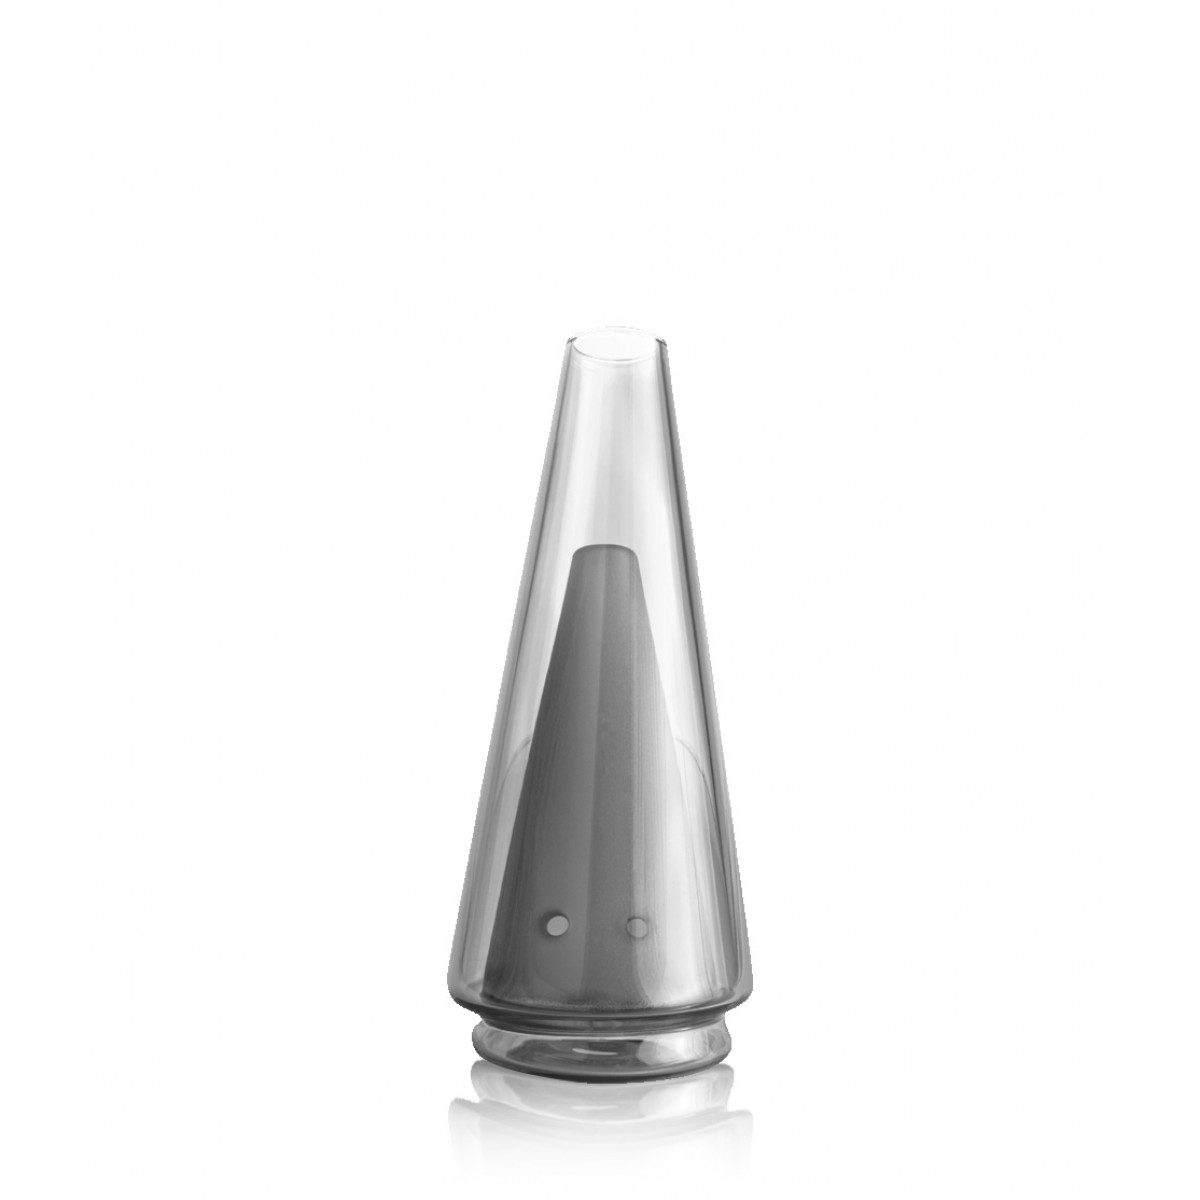 Peak Glass Attachment for Puffco Peak by Puffco on Sale ...